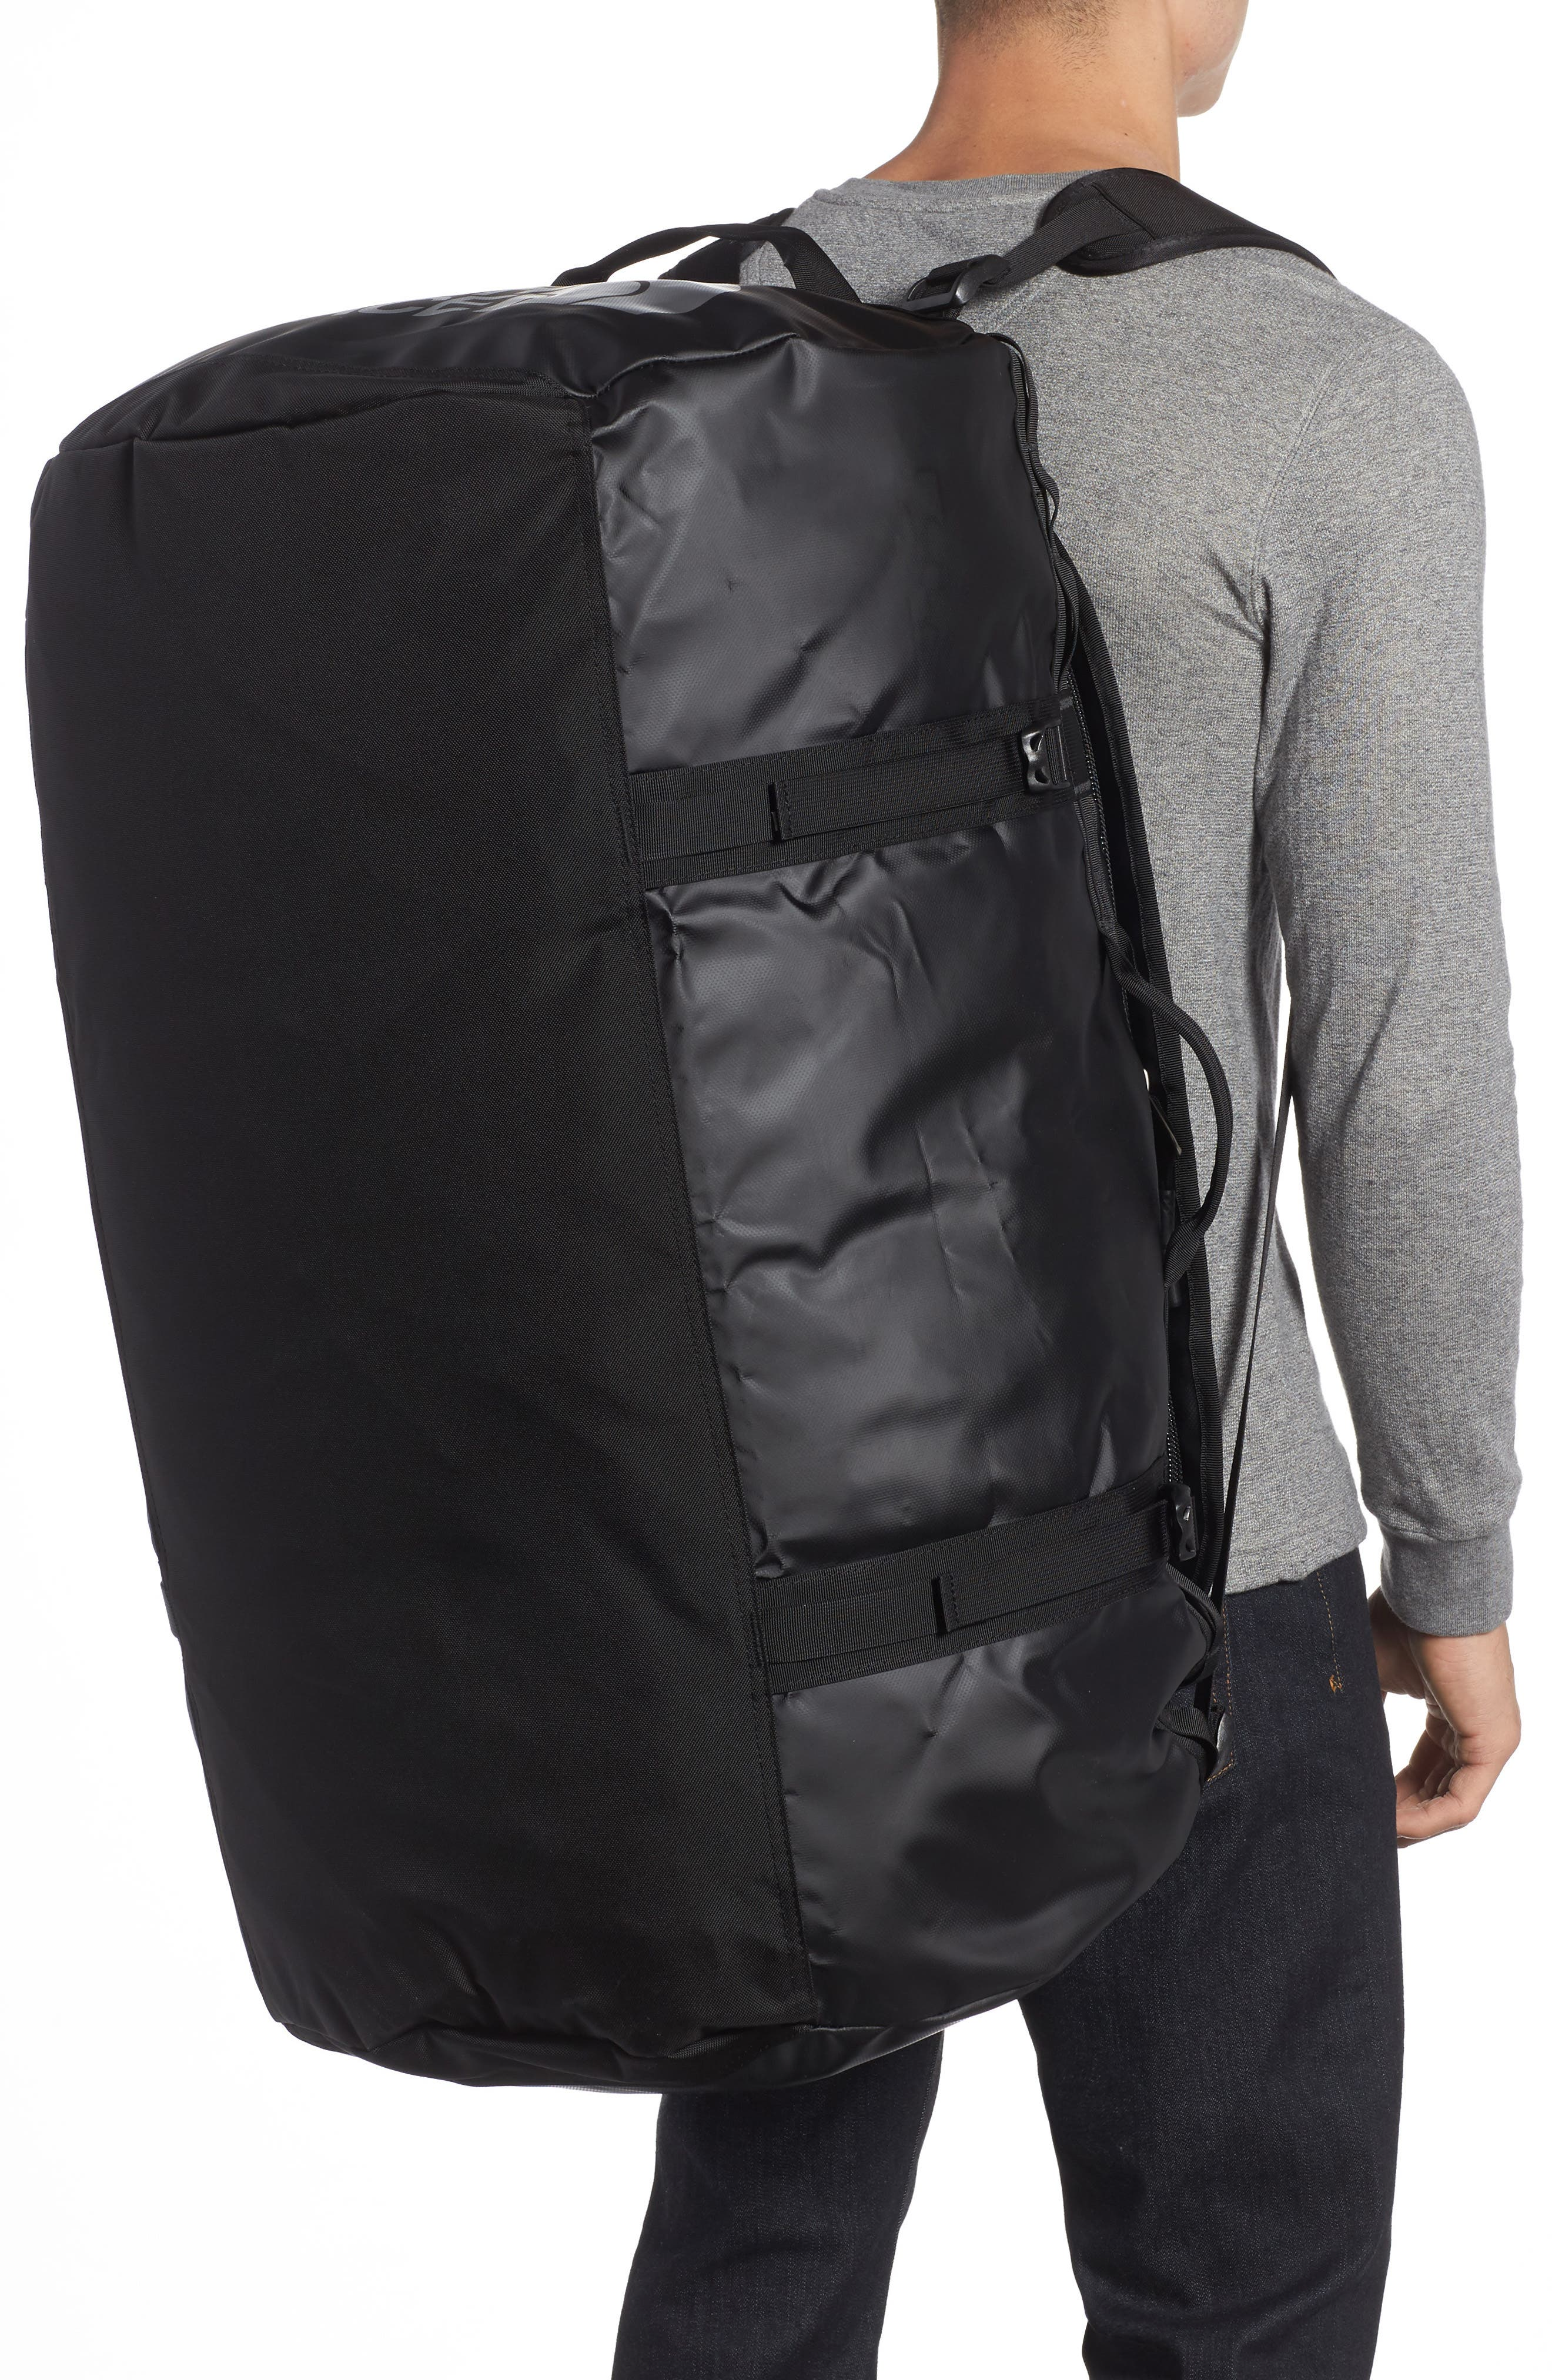 Base Camp XL Duffel Bag,                             Alternate thumbnail 2, color,                             Black